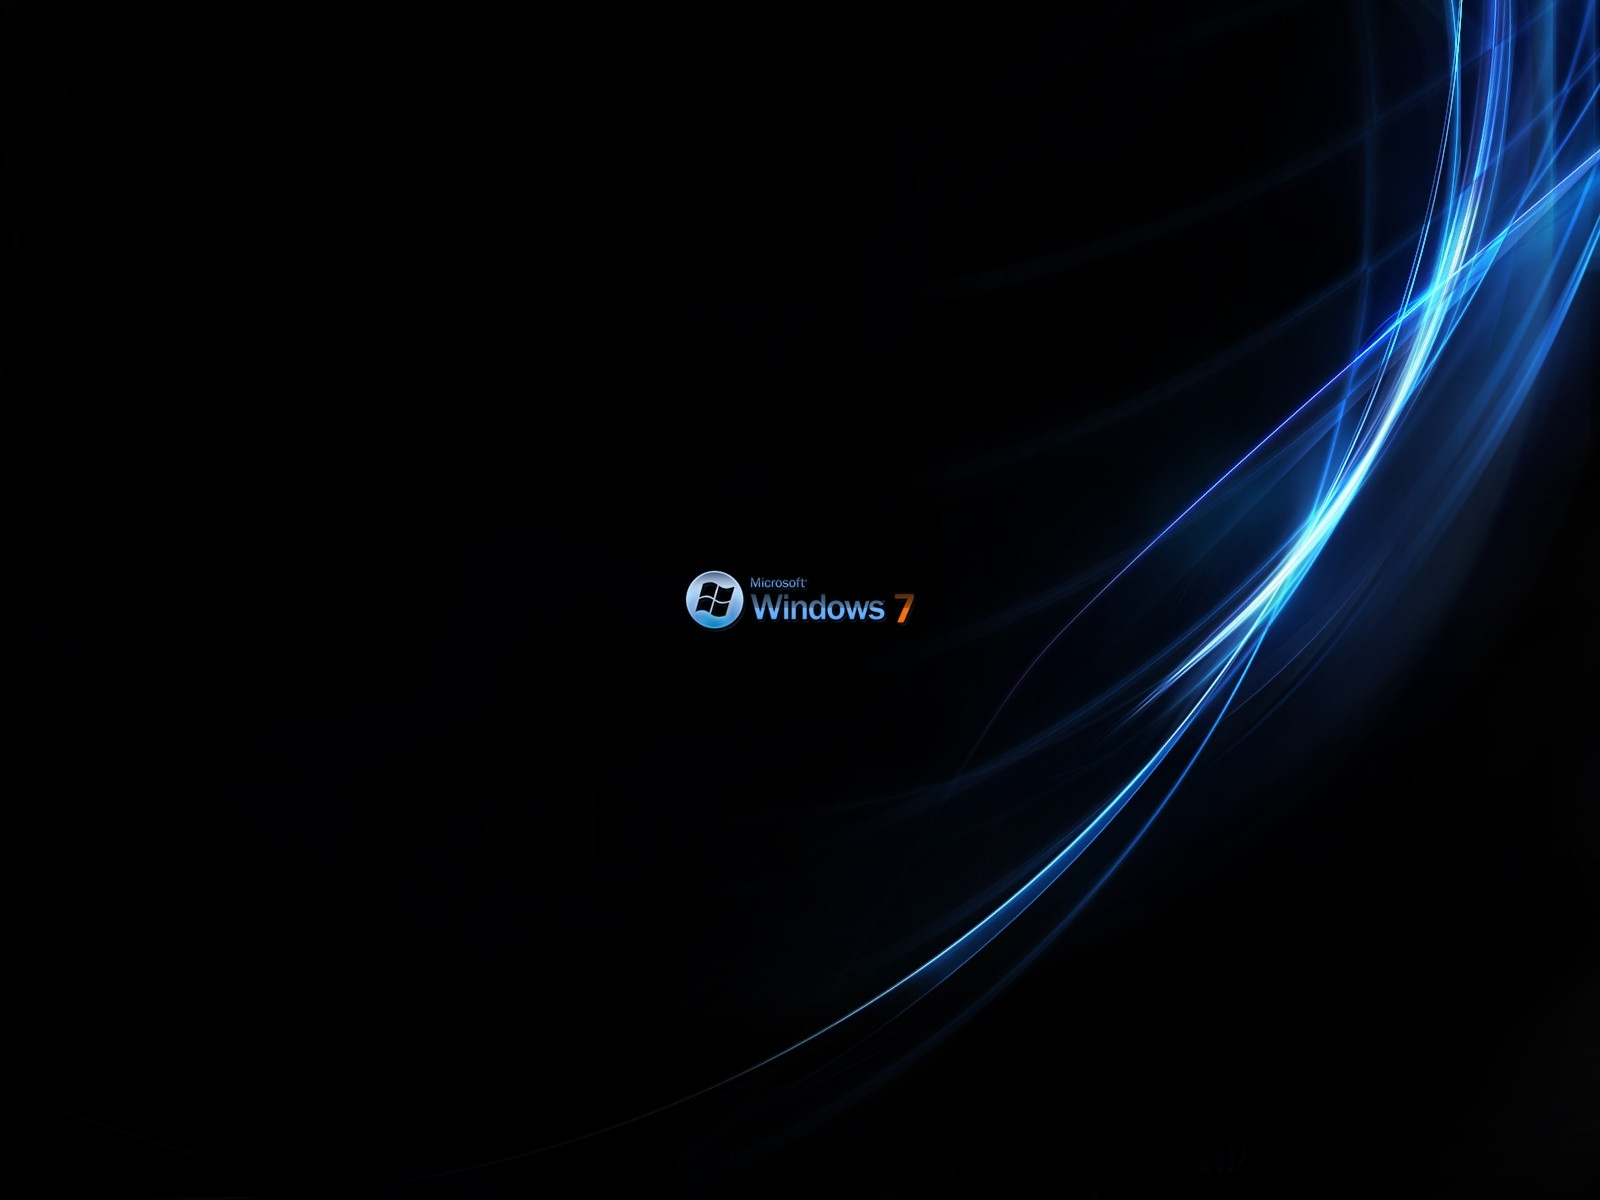 windows 7 rich black wallpapers | hd wallpapers | id #7149